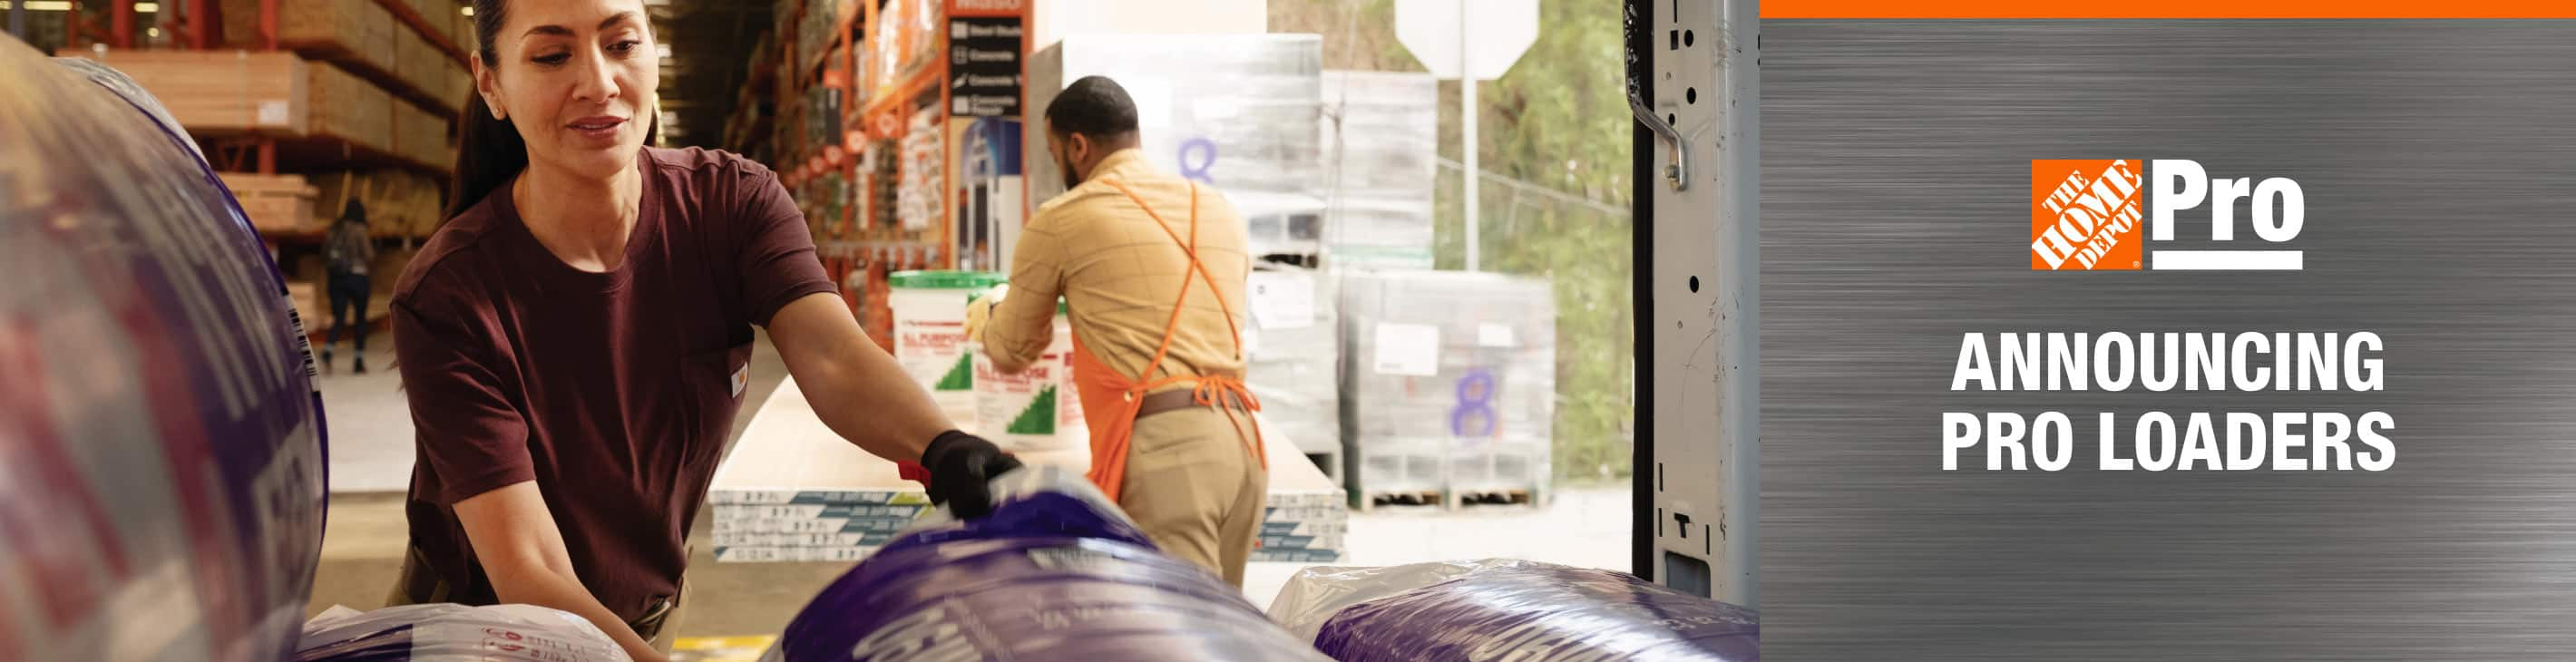 Home Depot associate loading Pro's pickup with building materials